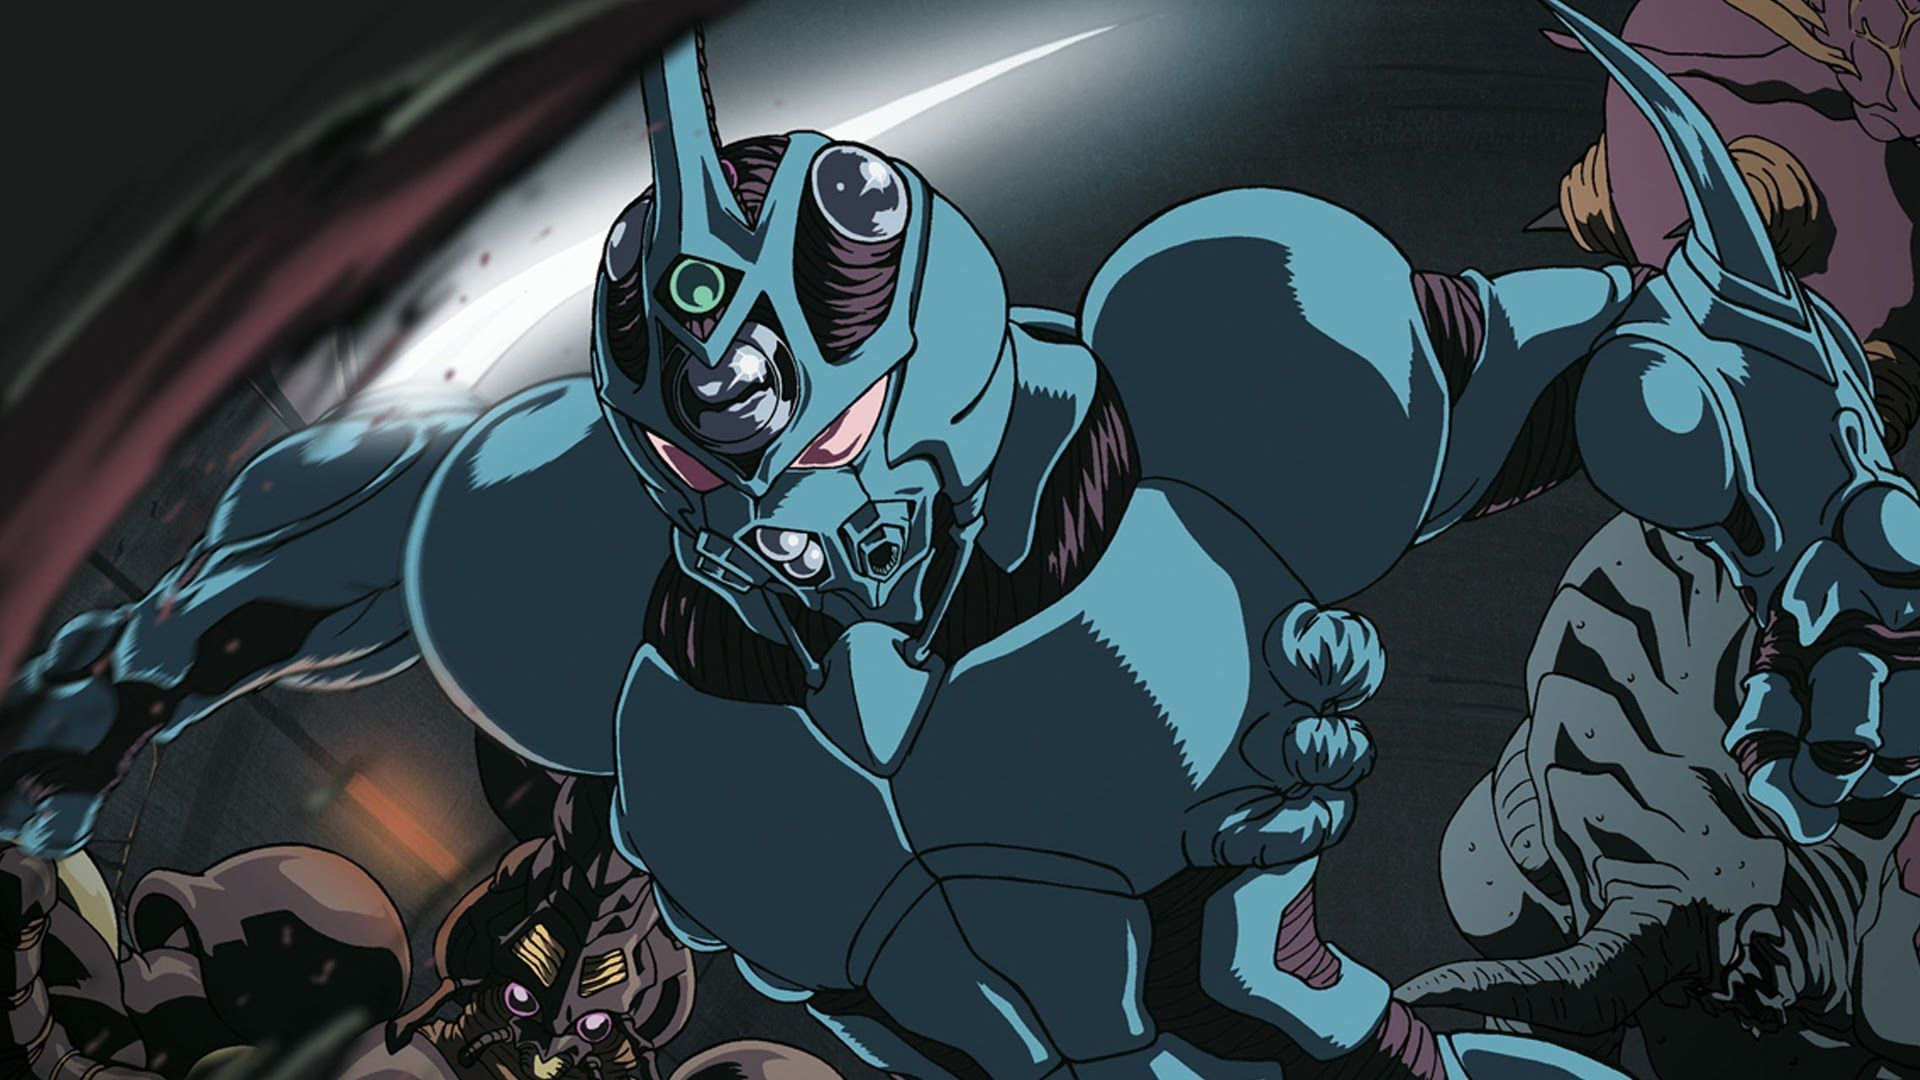 the guyver Google Search Recycled art, Art, Anime style